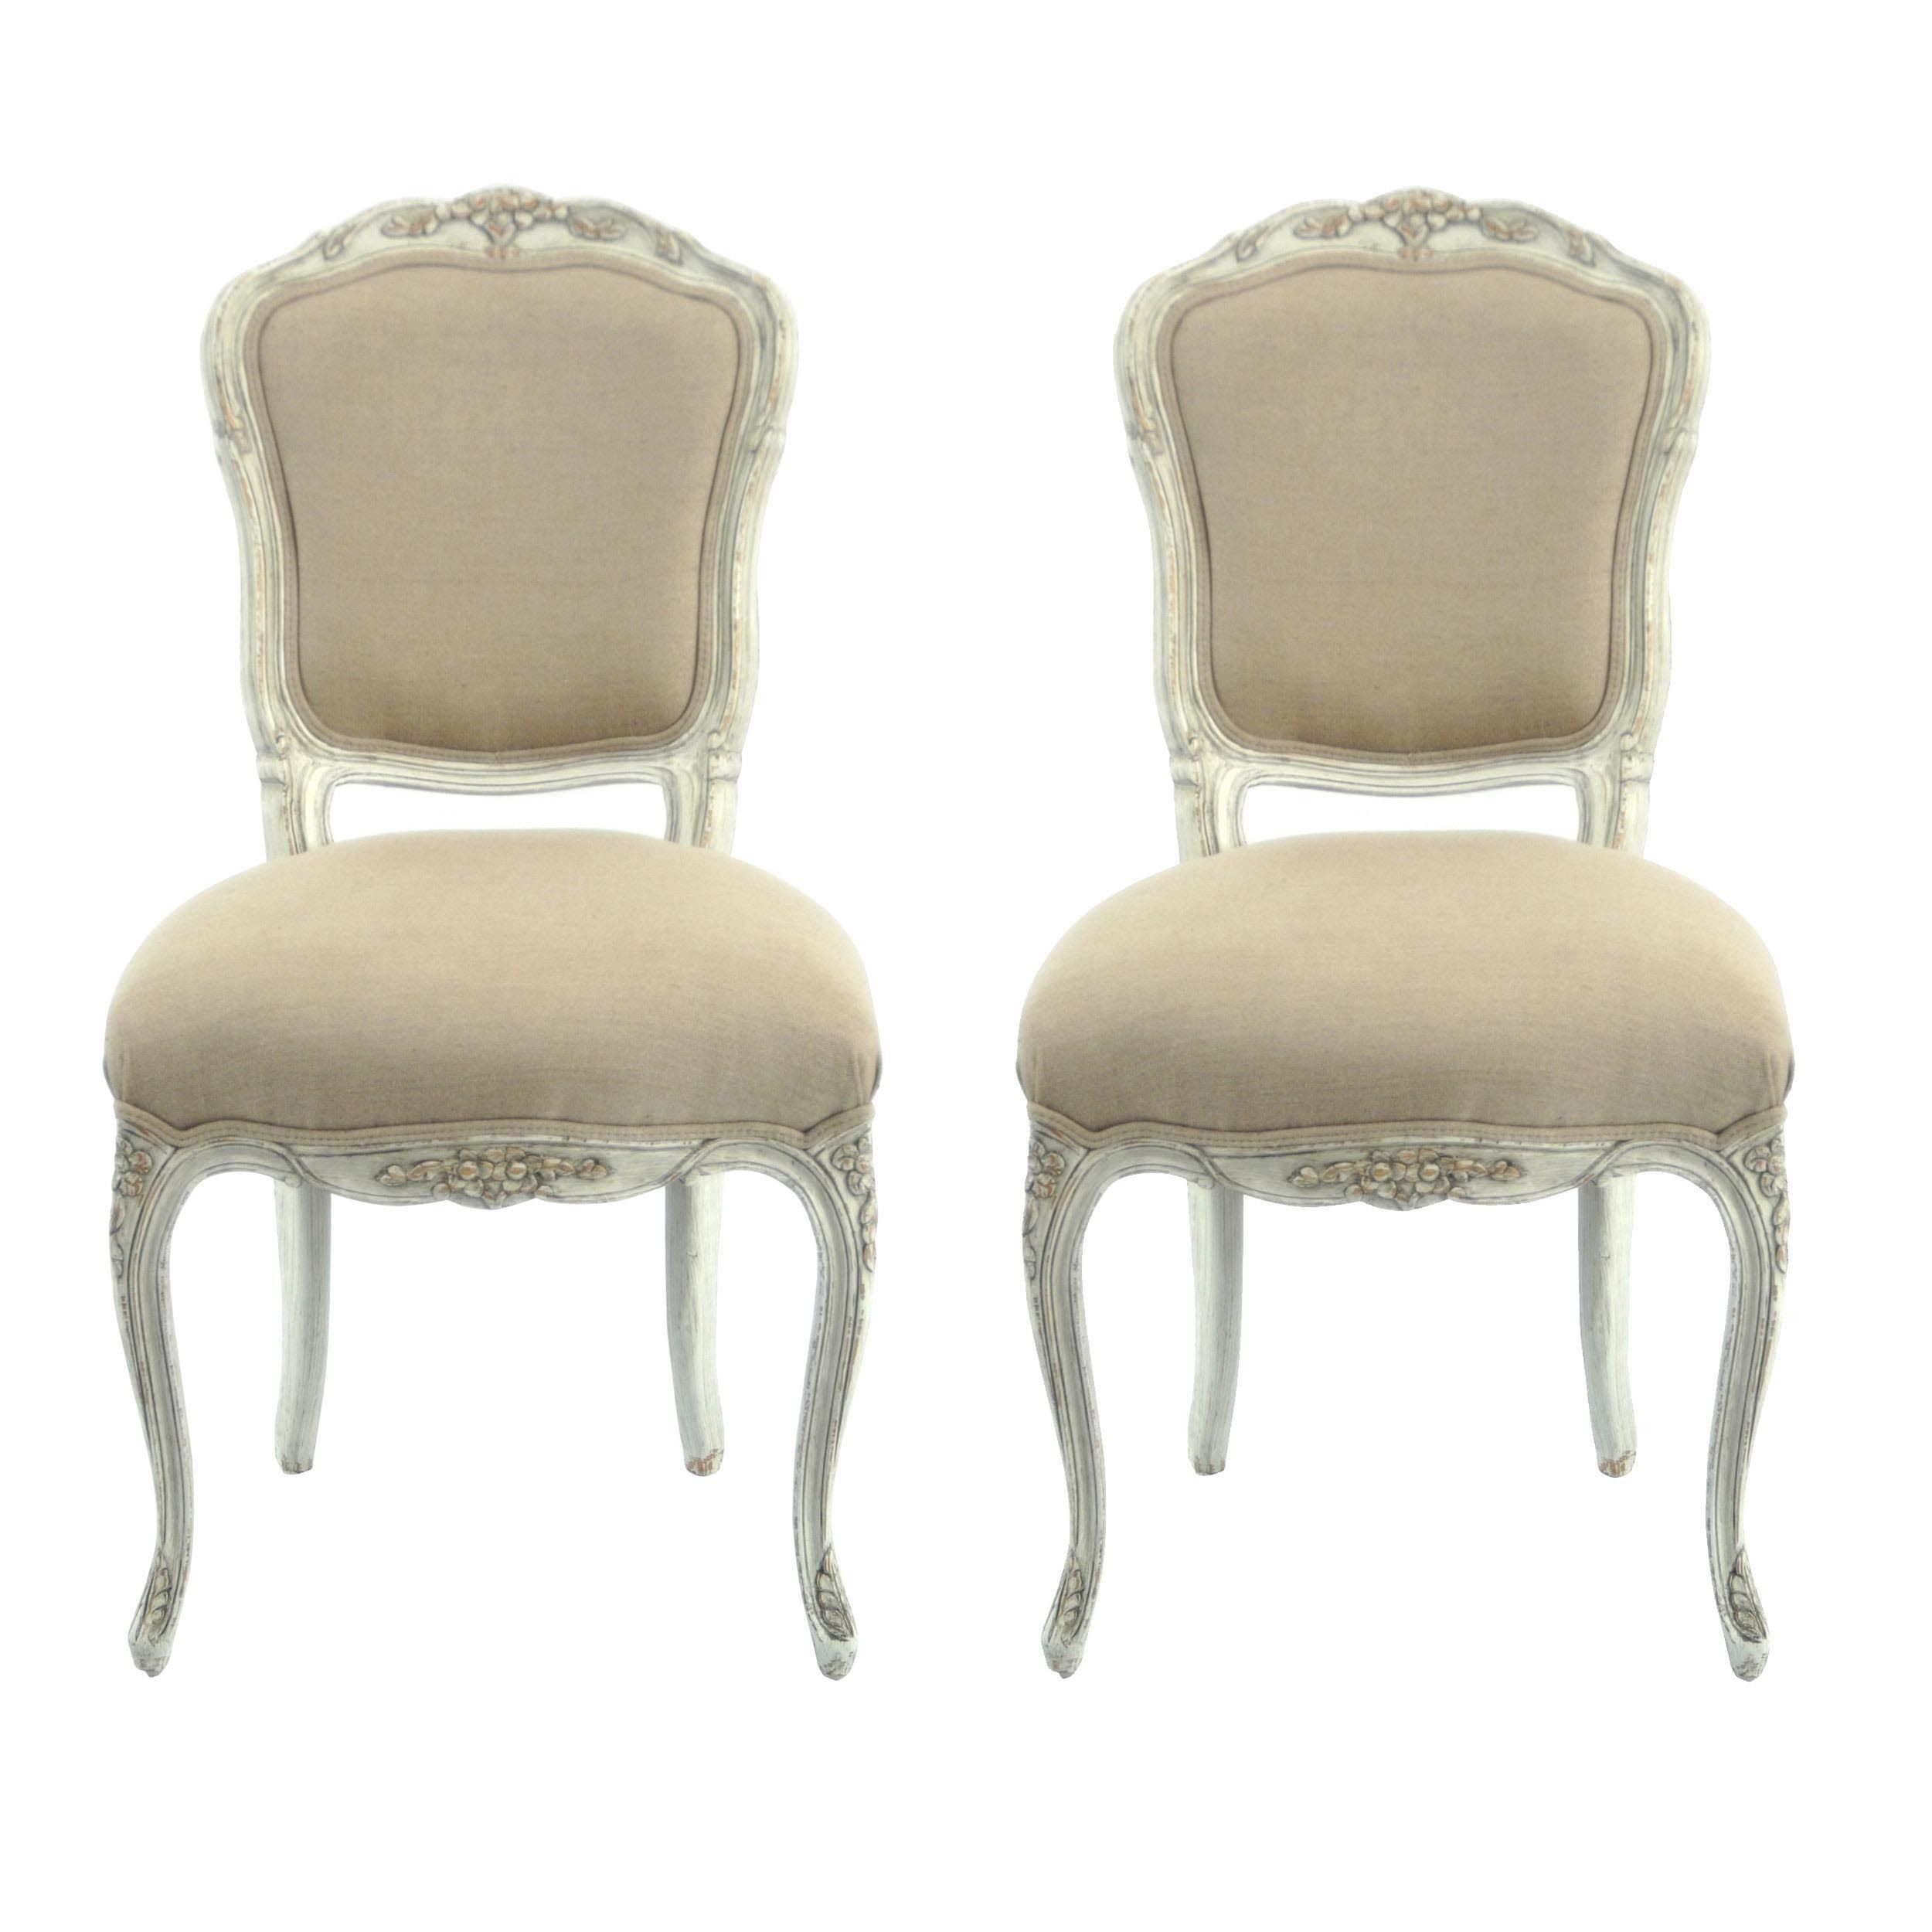 Give your home a European flair with this set of two antiqued French side chairs. Finished in distressed white with cotton/linen-blend ivory upholstery, the hand-carved chairs add just the right touch to any formal living room or master bedroom.